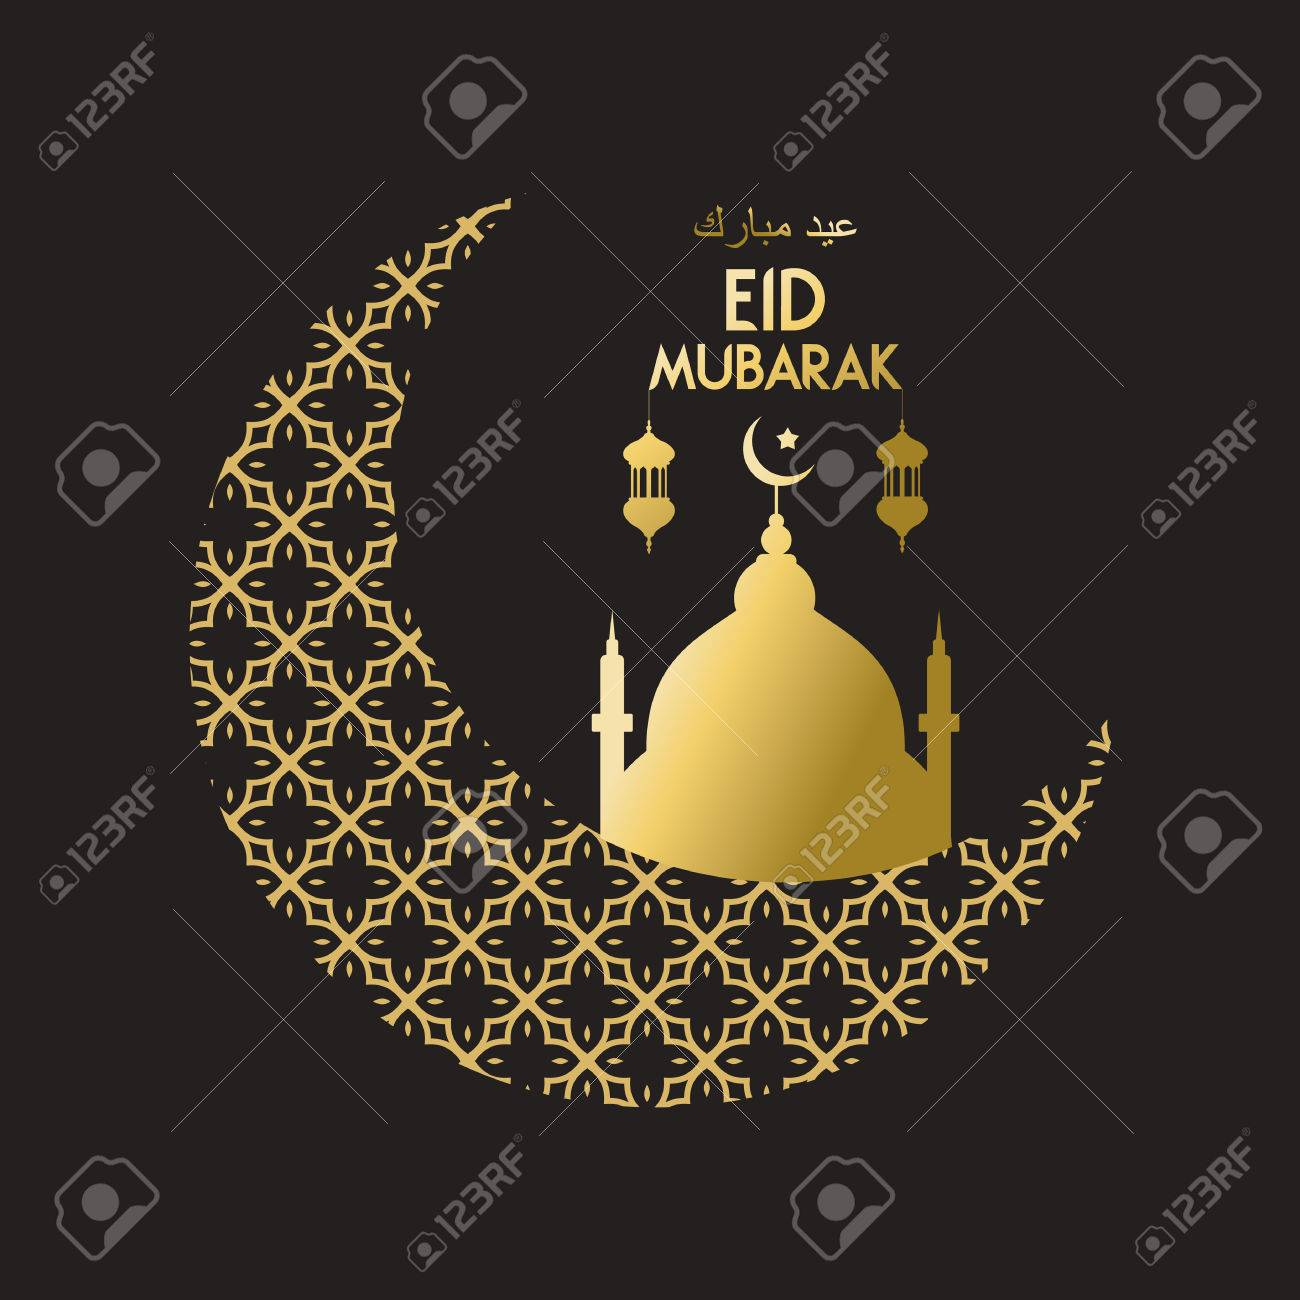 Eid mubarak greeting card for muslim holiday season traditional eid mubarak greeting card for muslim holiday season traditional arabic mosque in gold color and m4hsunfo